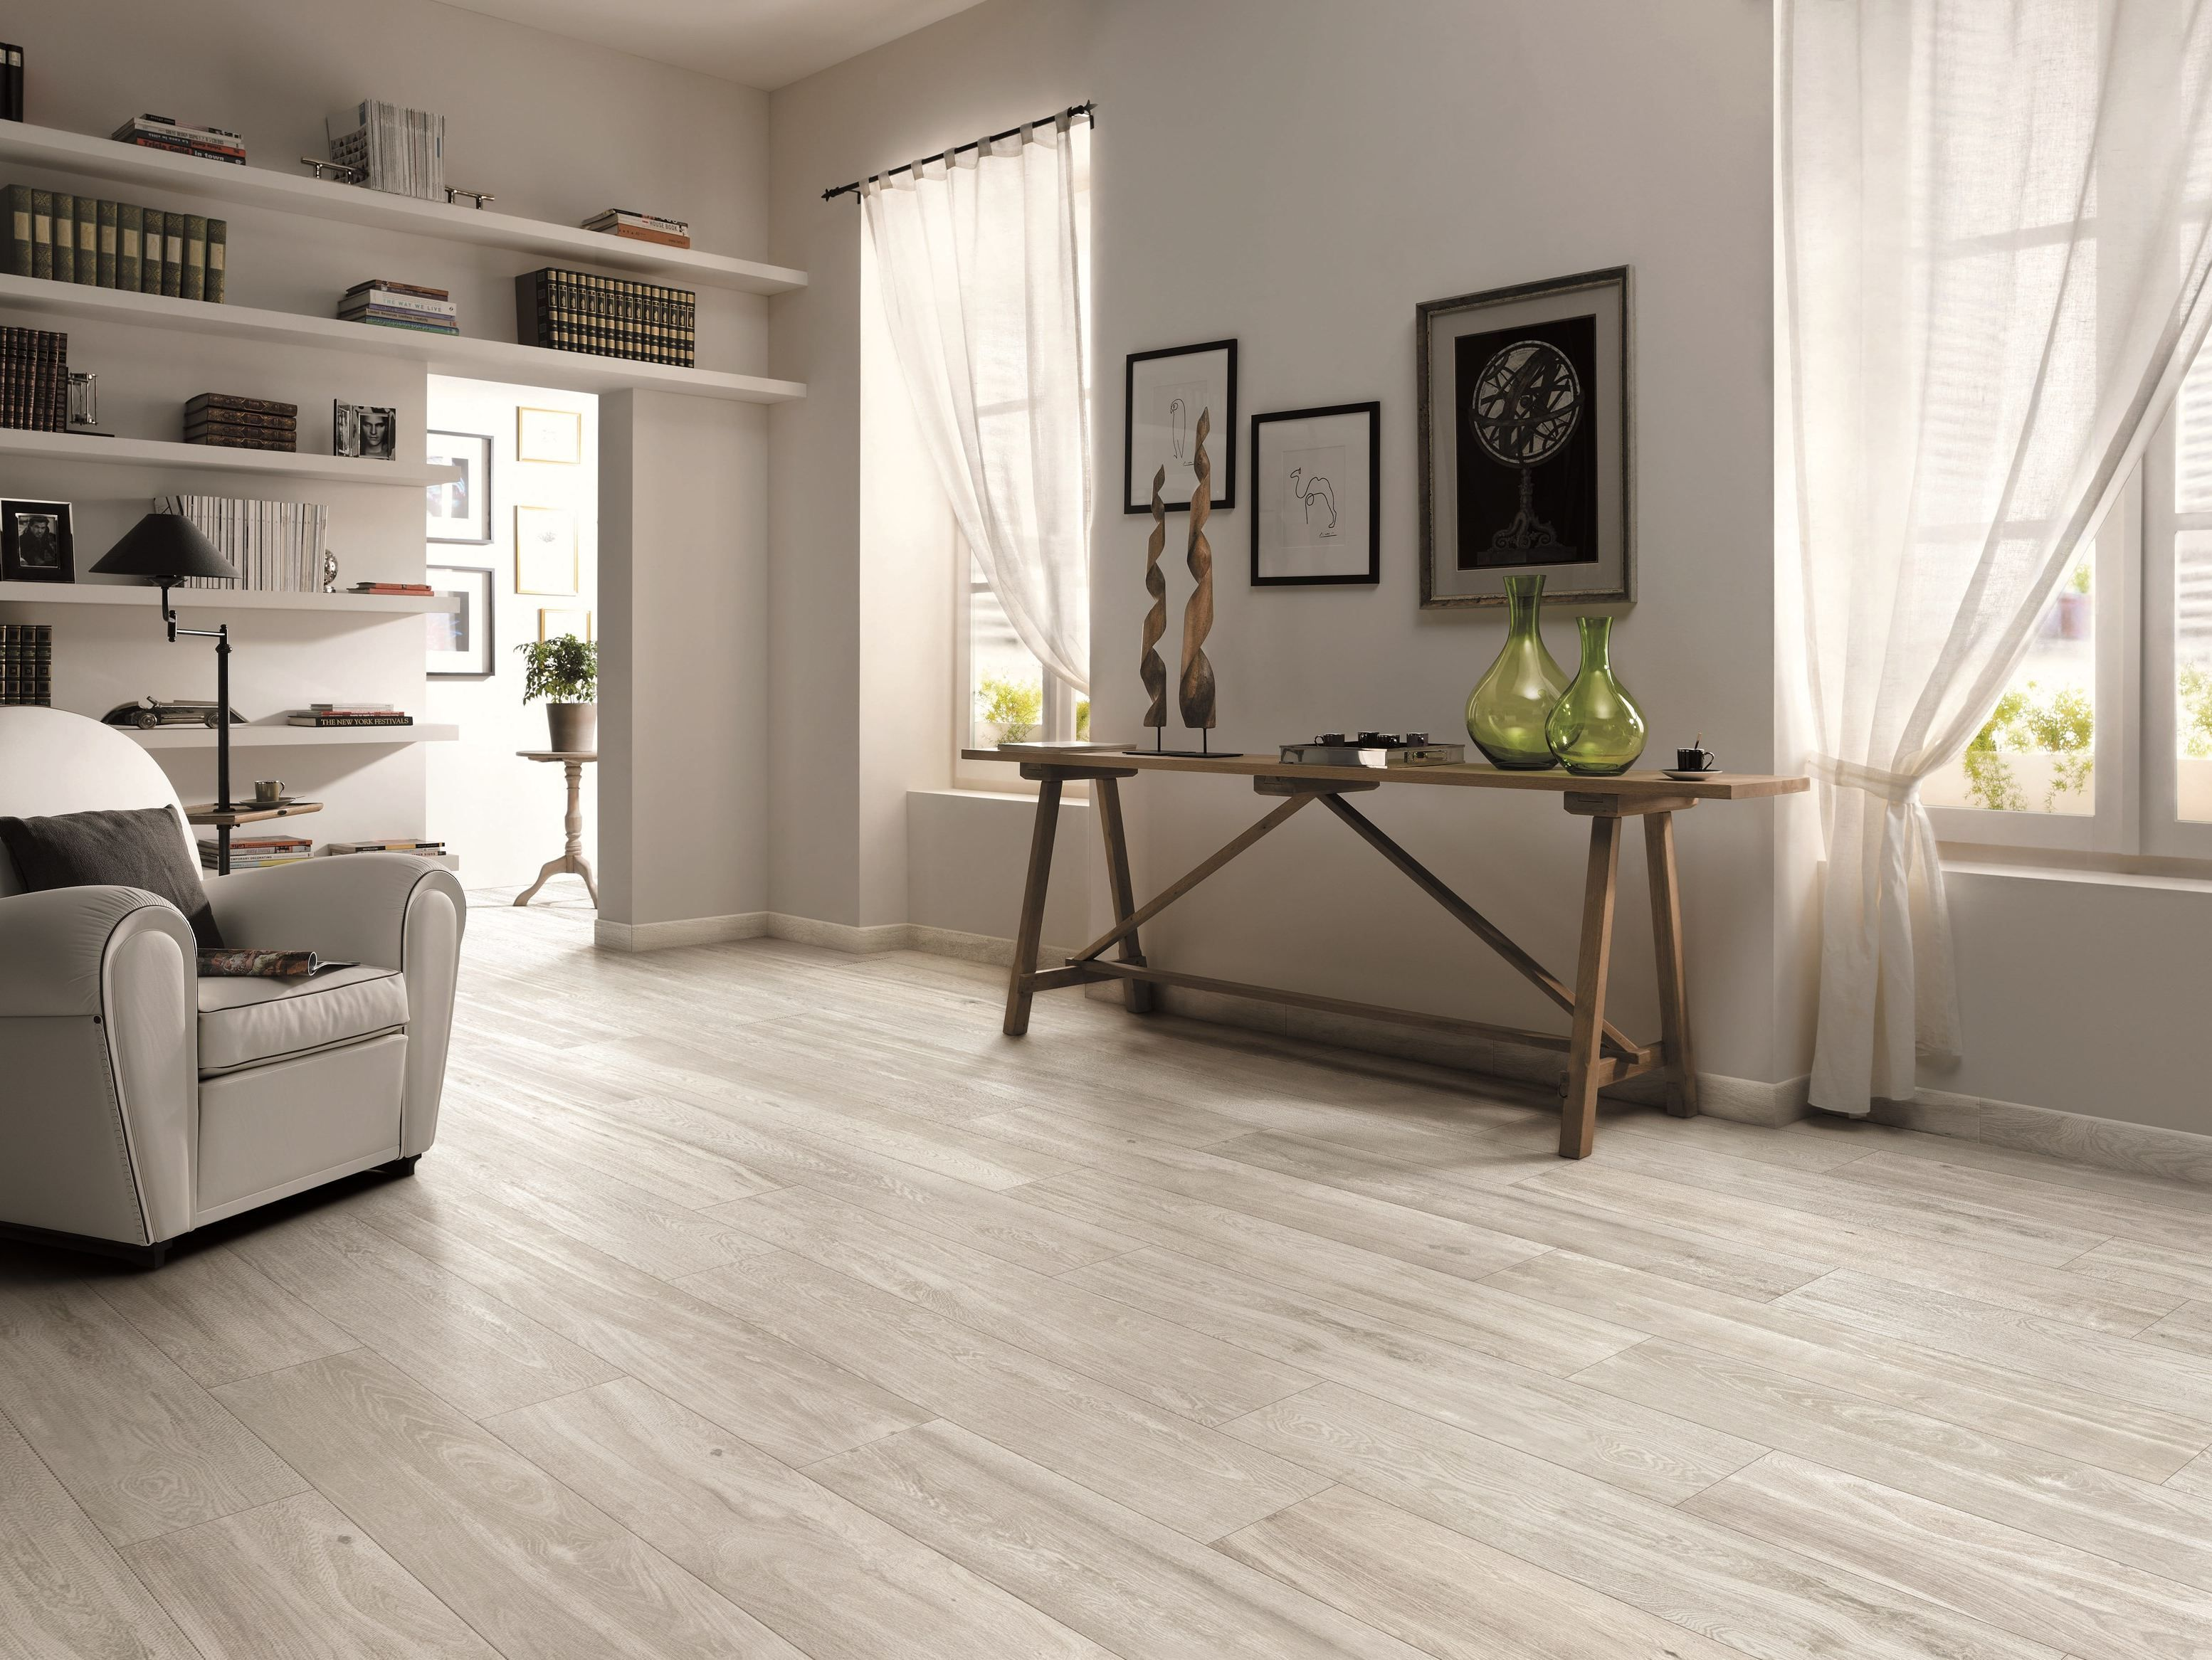 indooroutdoor wallfloor tiles with wood effect bark by fap ceramiche